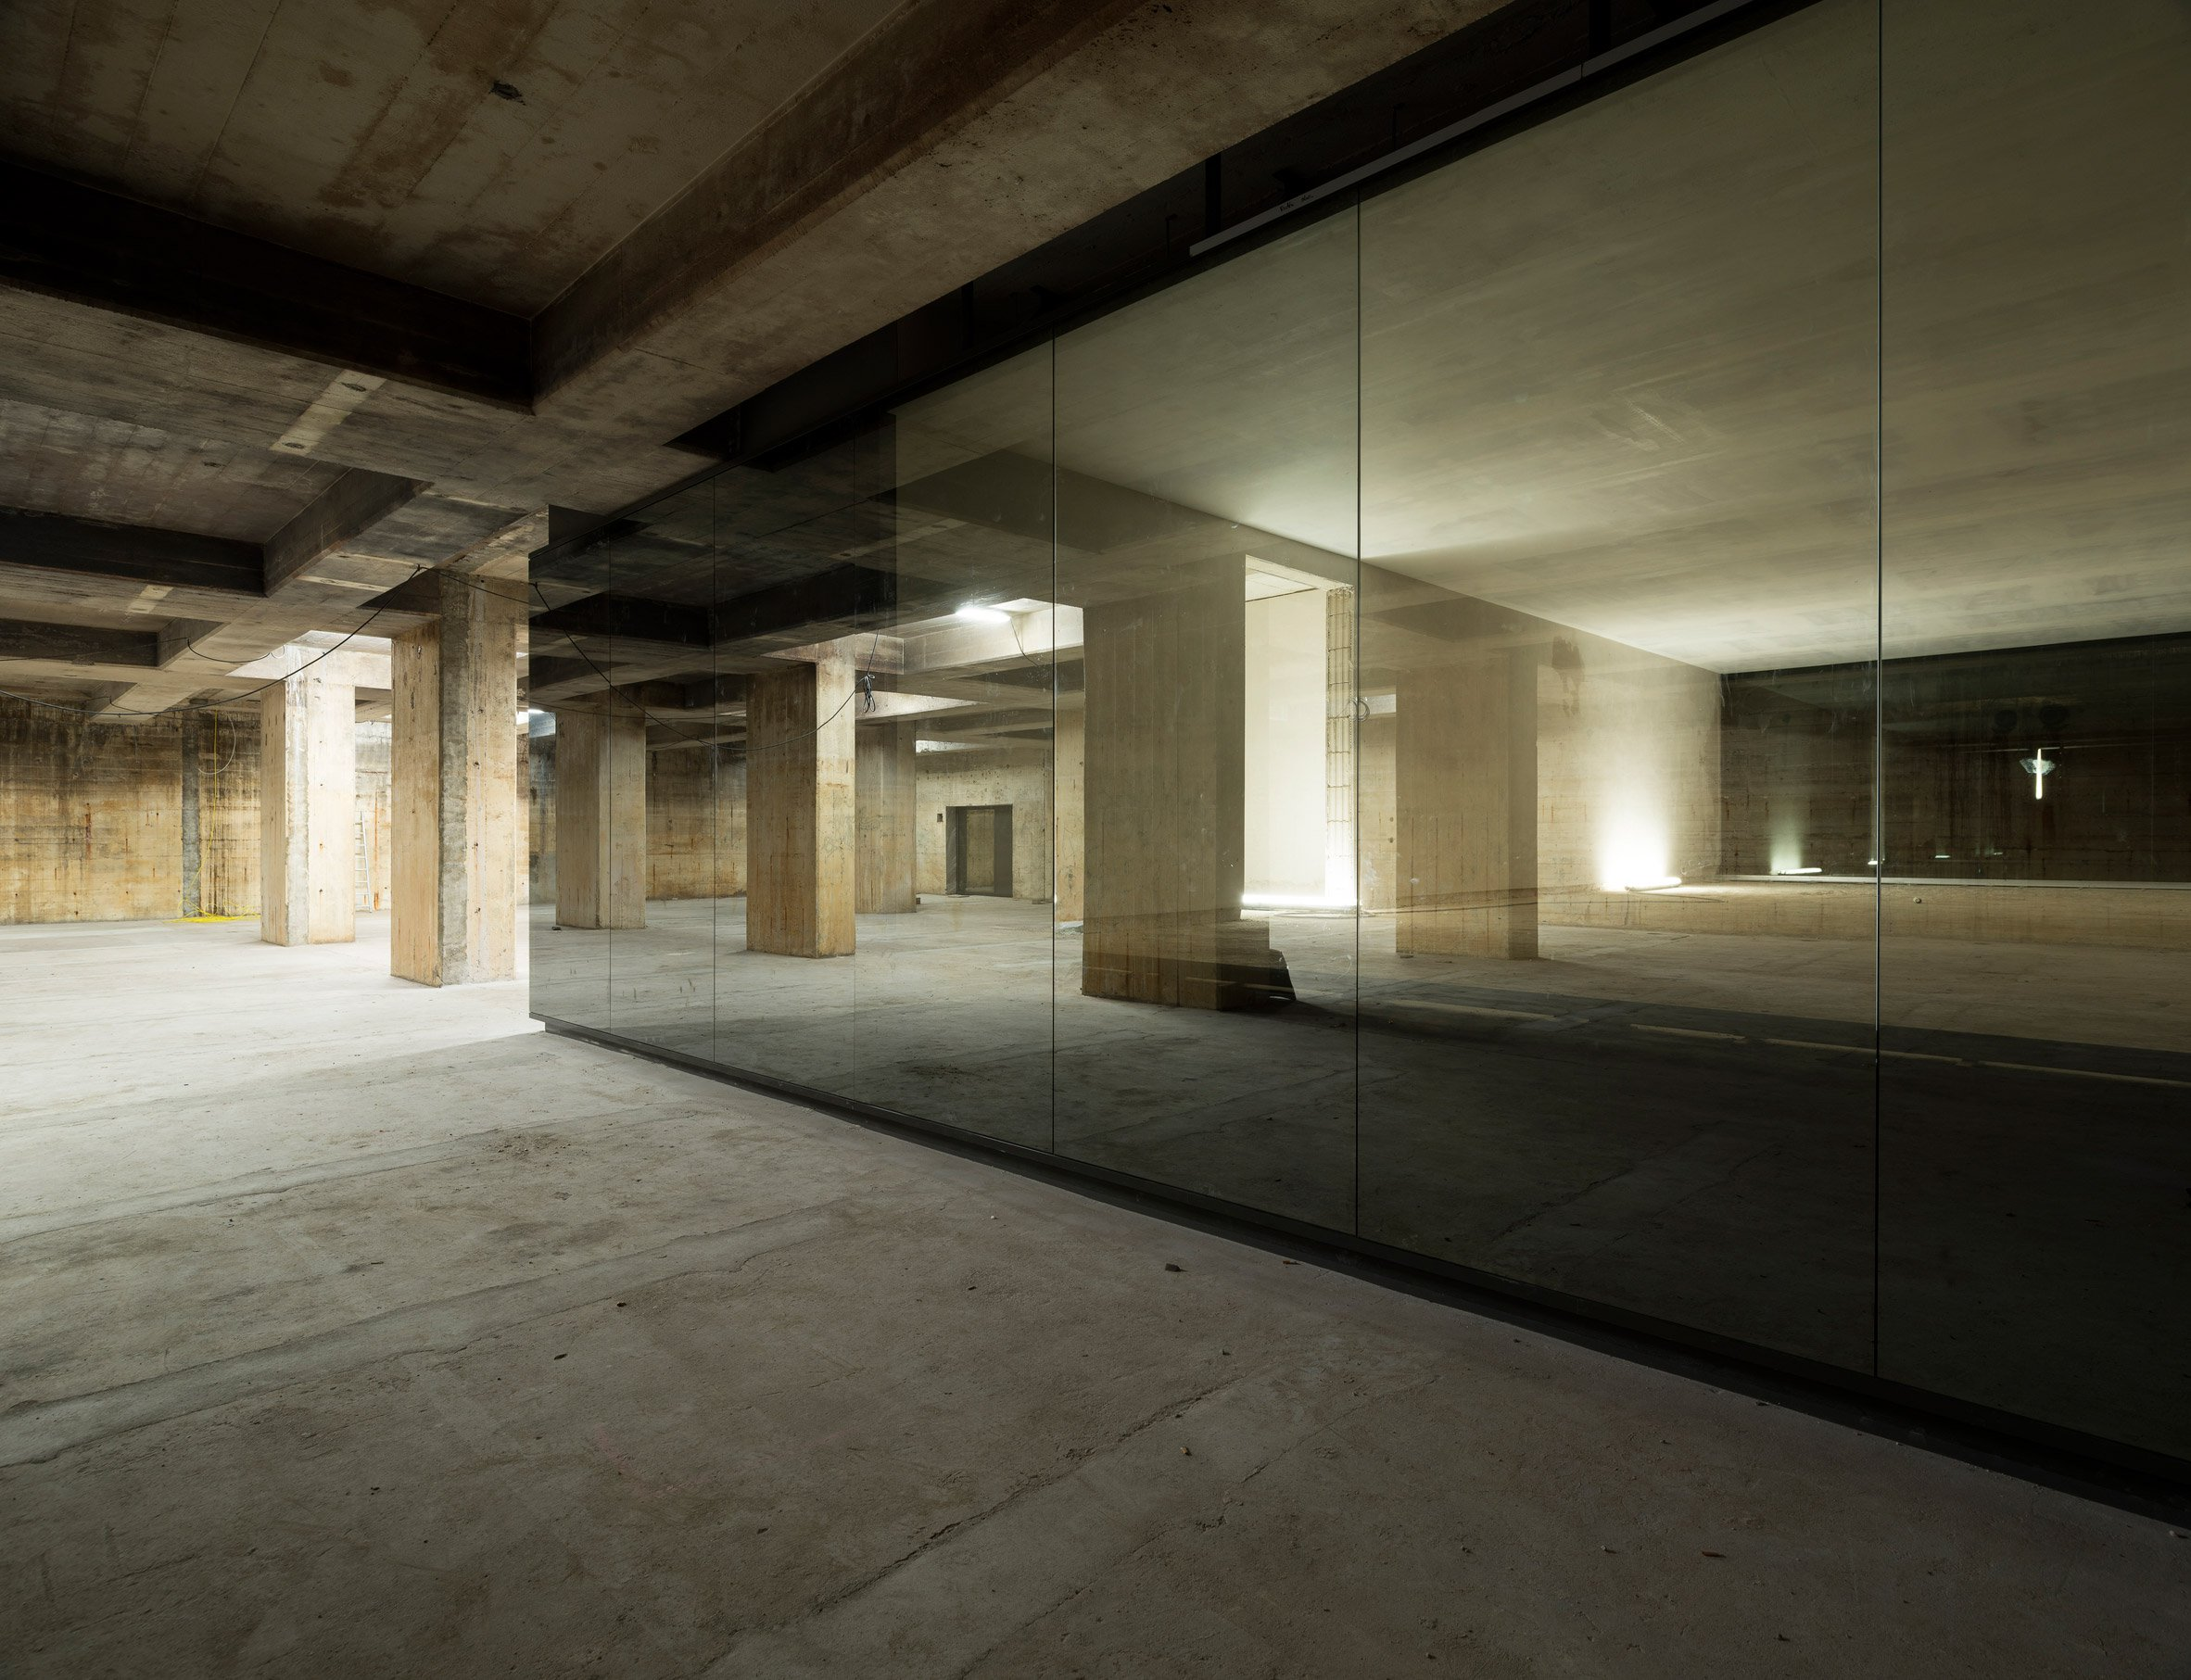 John Pawson converts WW2 bunkers into museum of Southeast Asian art in Berlin